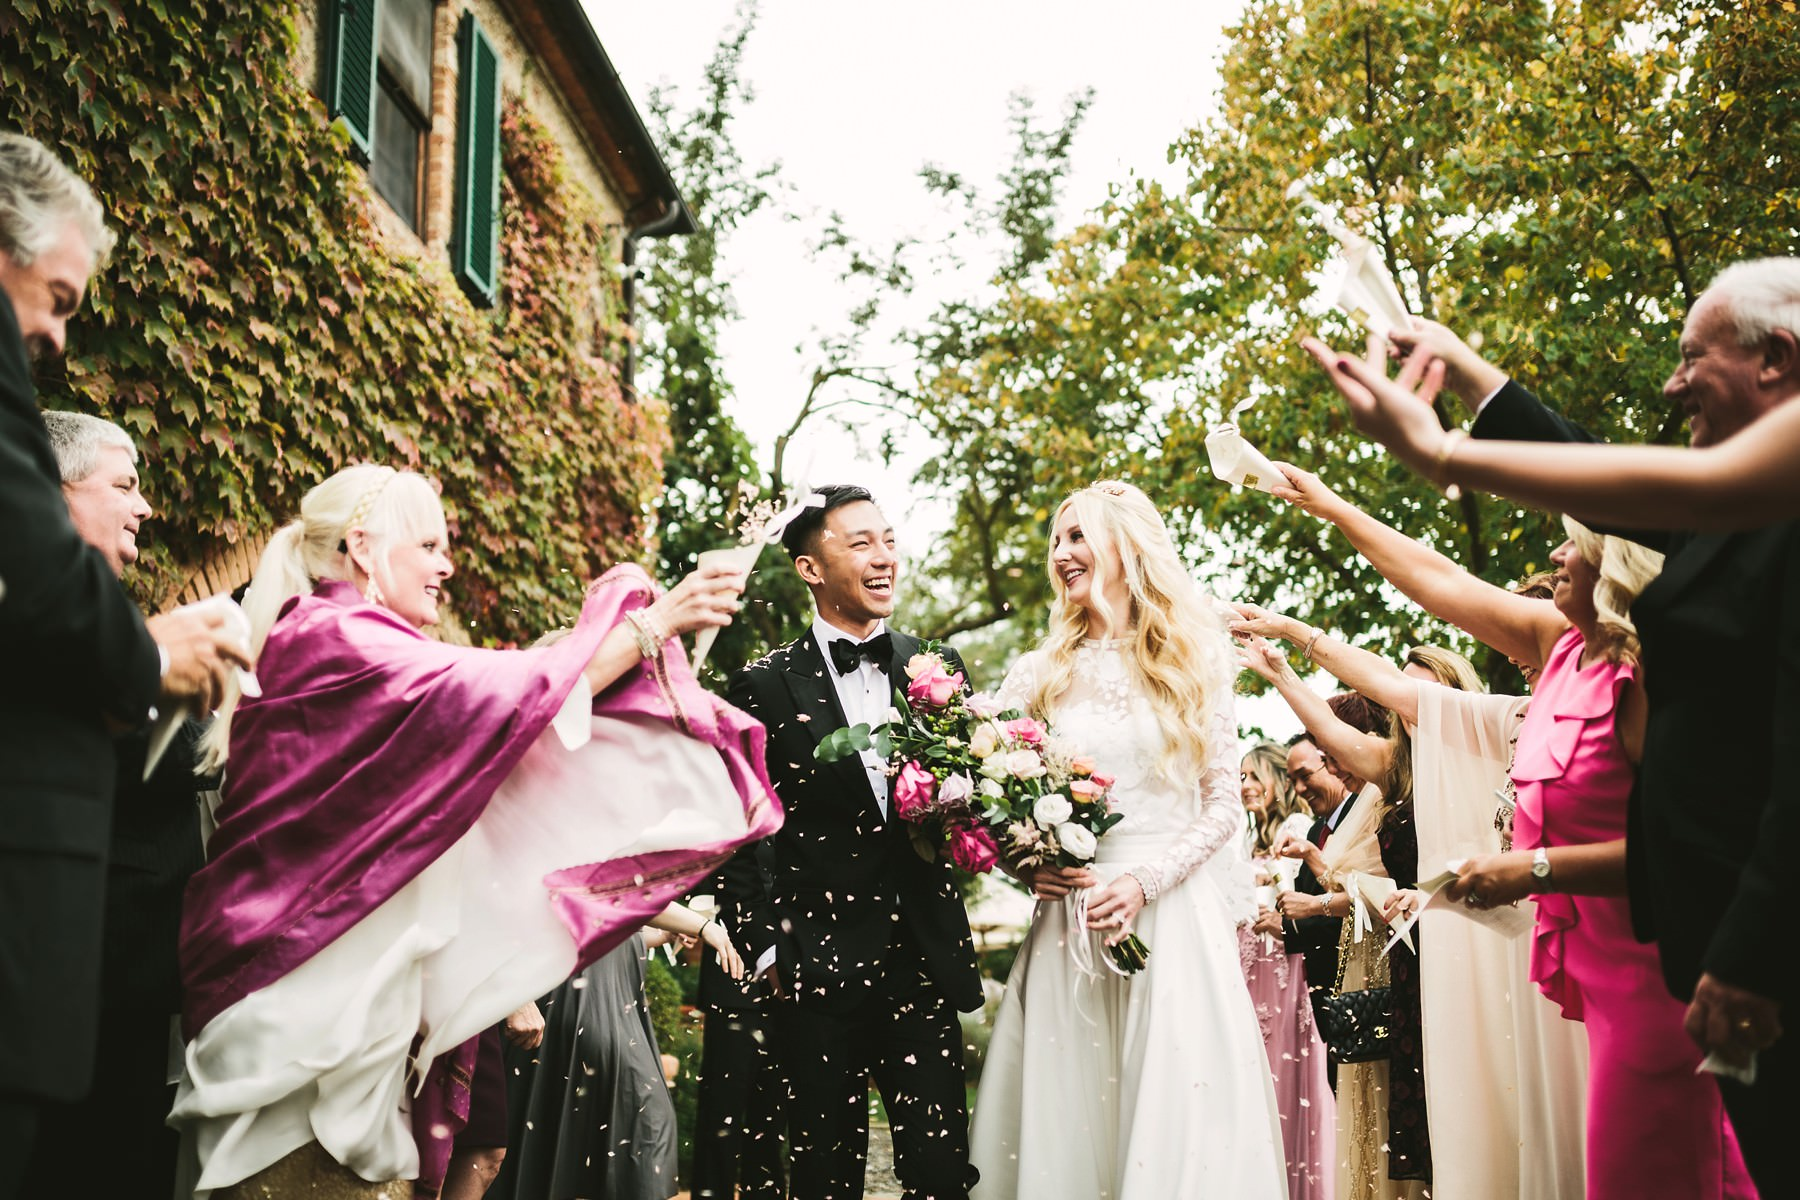 Lovely candid shoot during wedding petal throwing